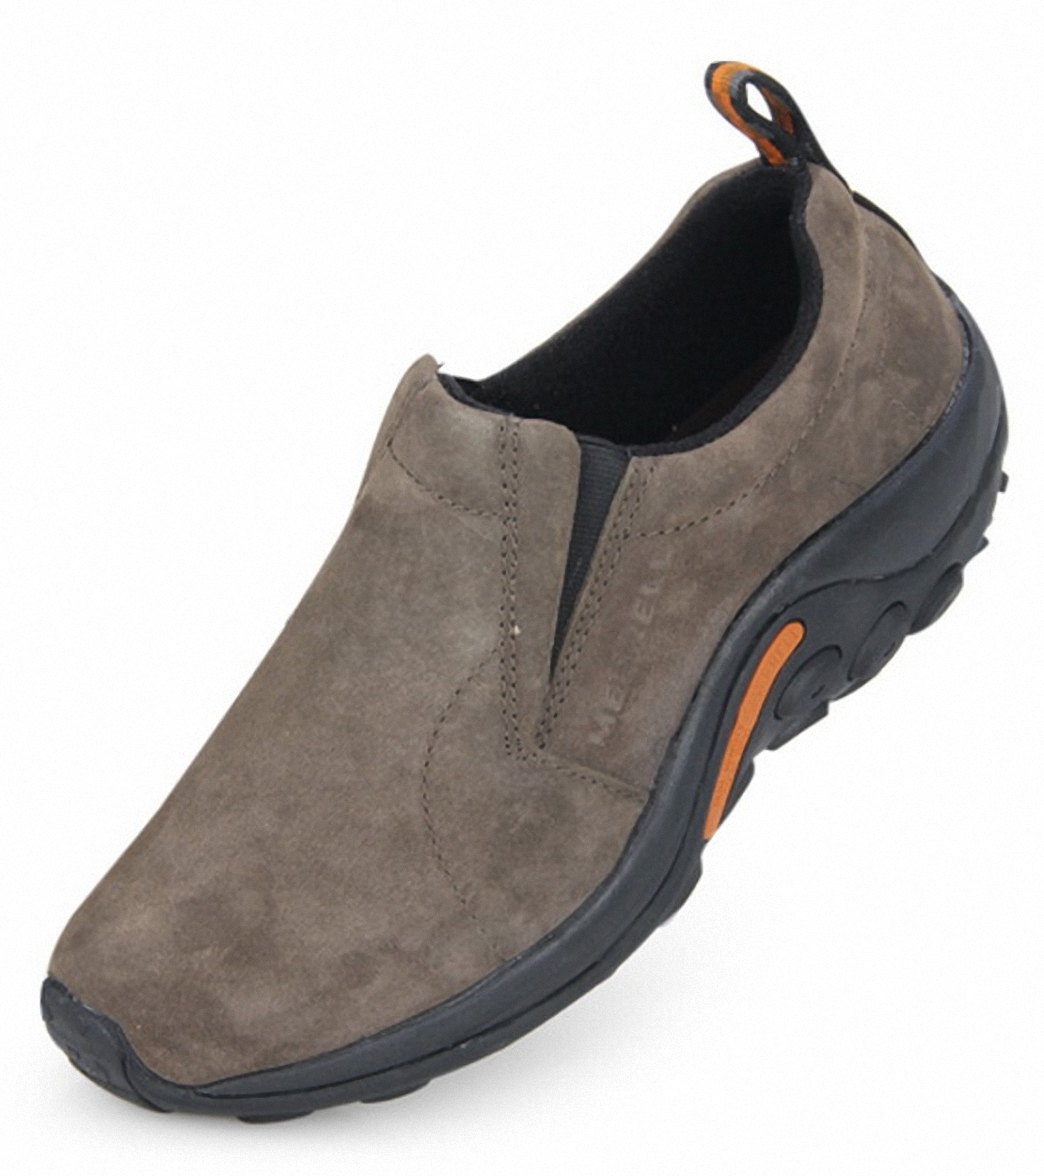 Merrell Men s Jungle Moc Slip On at SwimOutlet.com - Free Shipping 59422b14d1dd